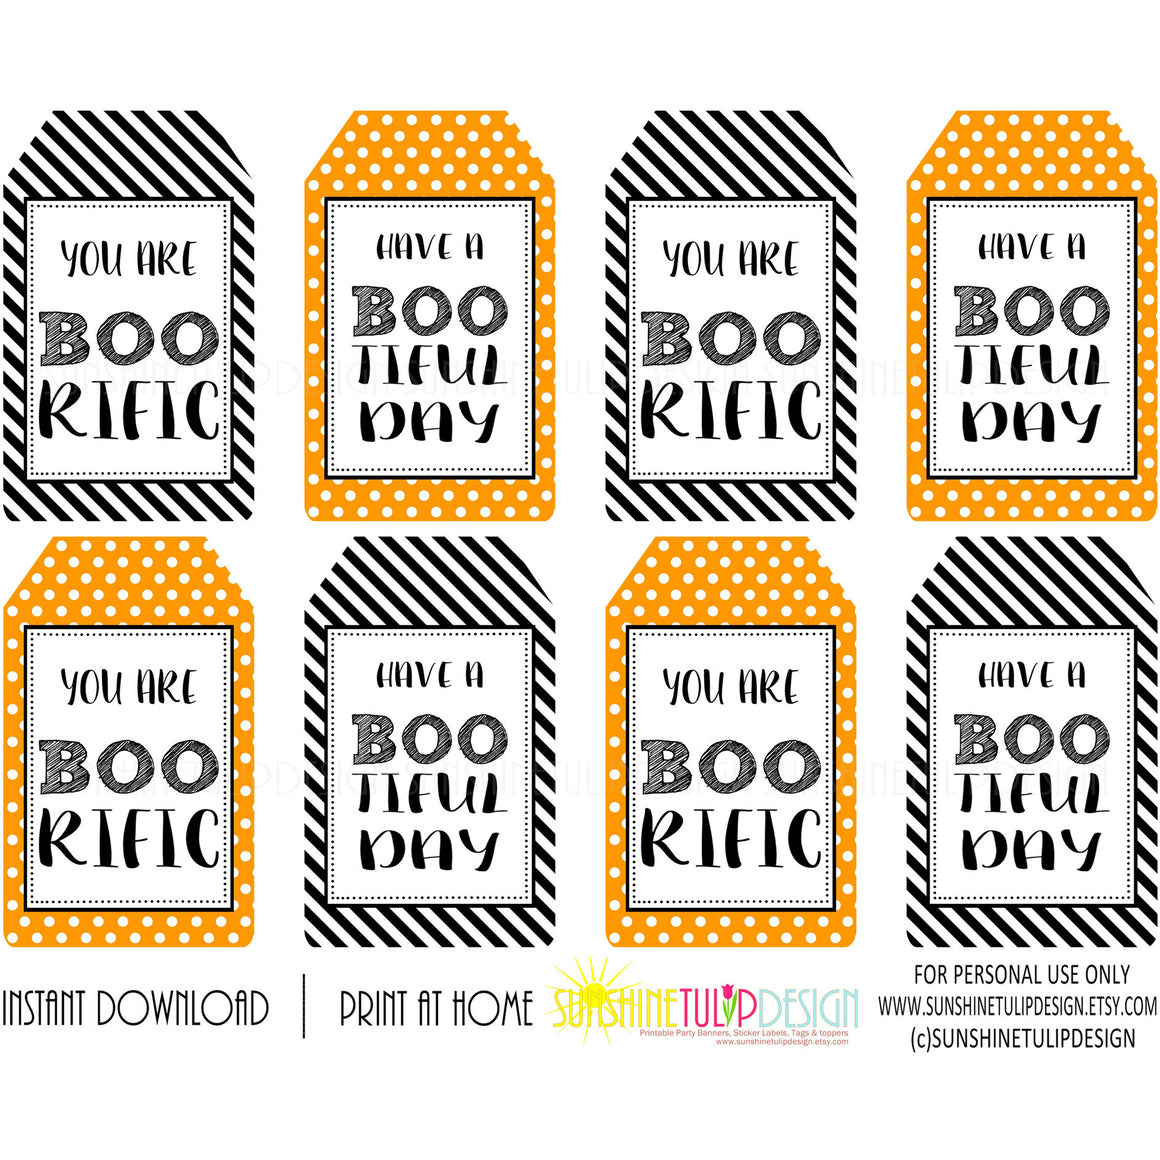 picture relating to Free Printable Halloween Gift Tags referred to as Printable Halloween Present Tags, Halloween BOOrific BOOtiful Working day Choose Reward Tags by means of Sunshinetulipdesign